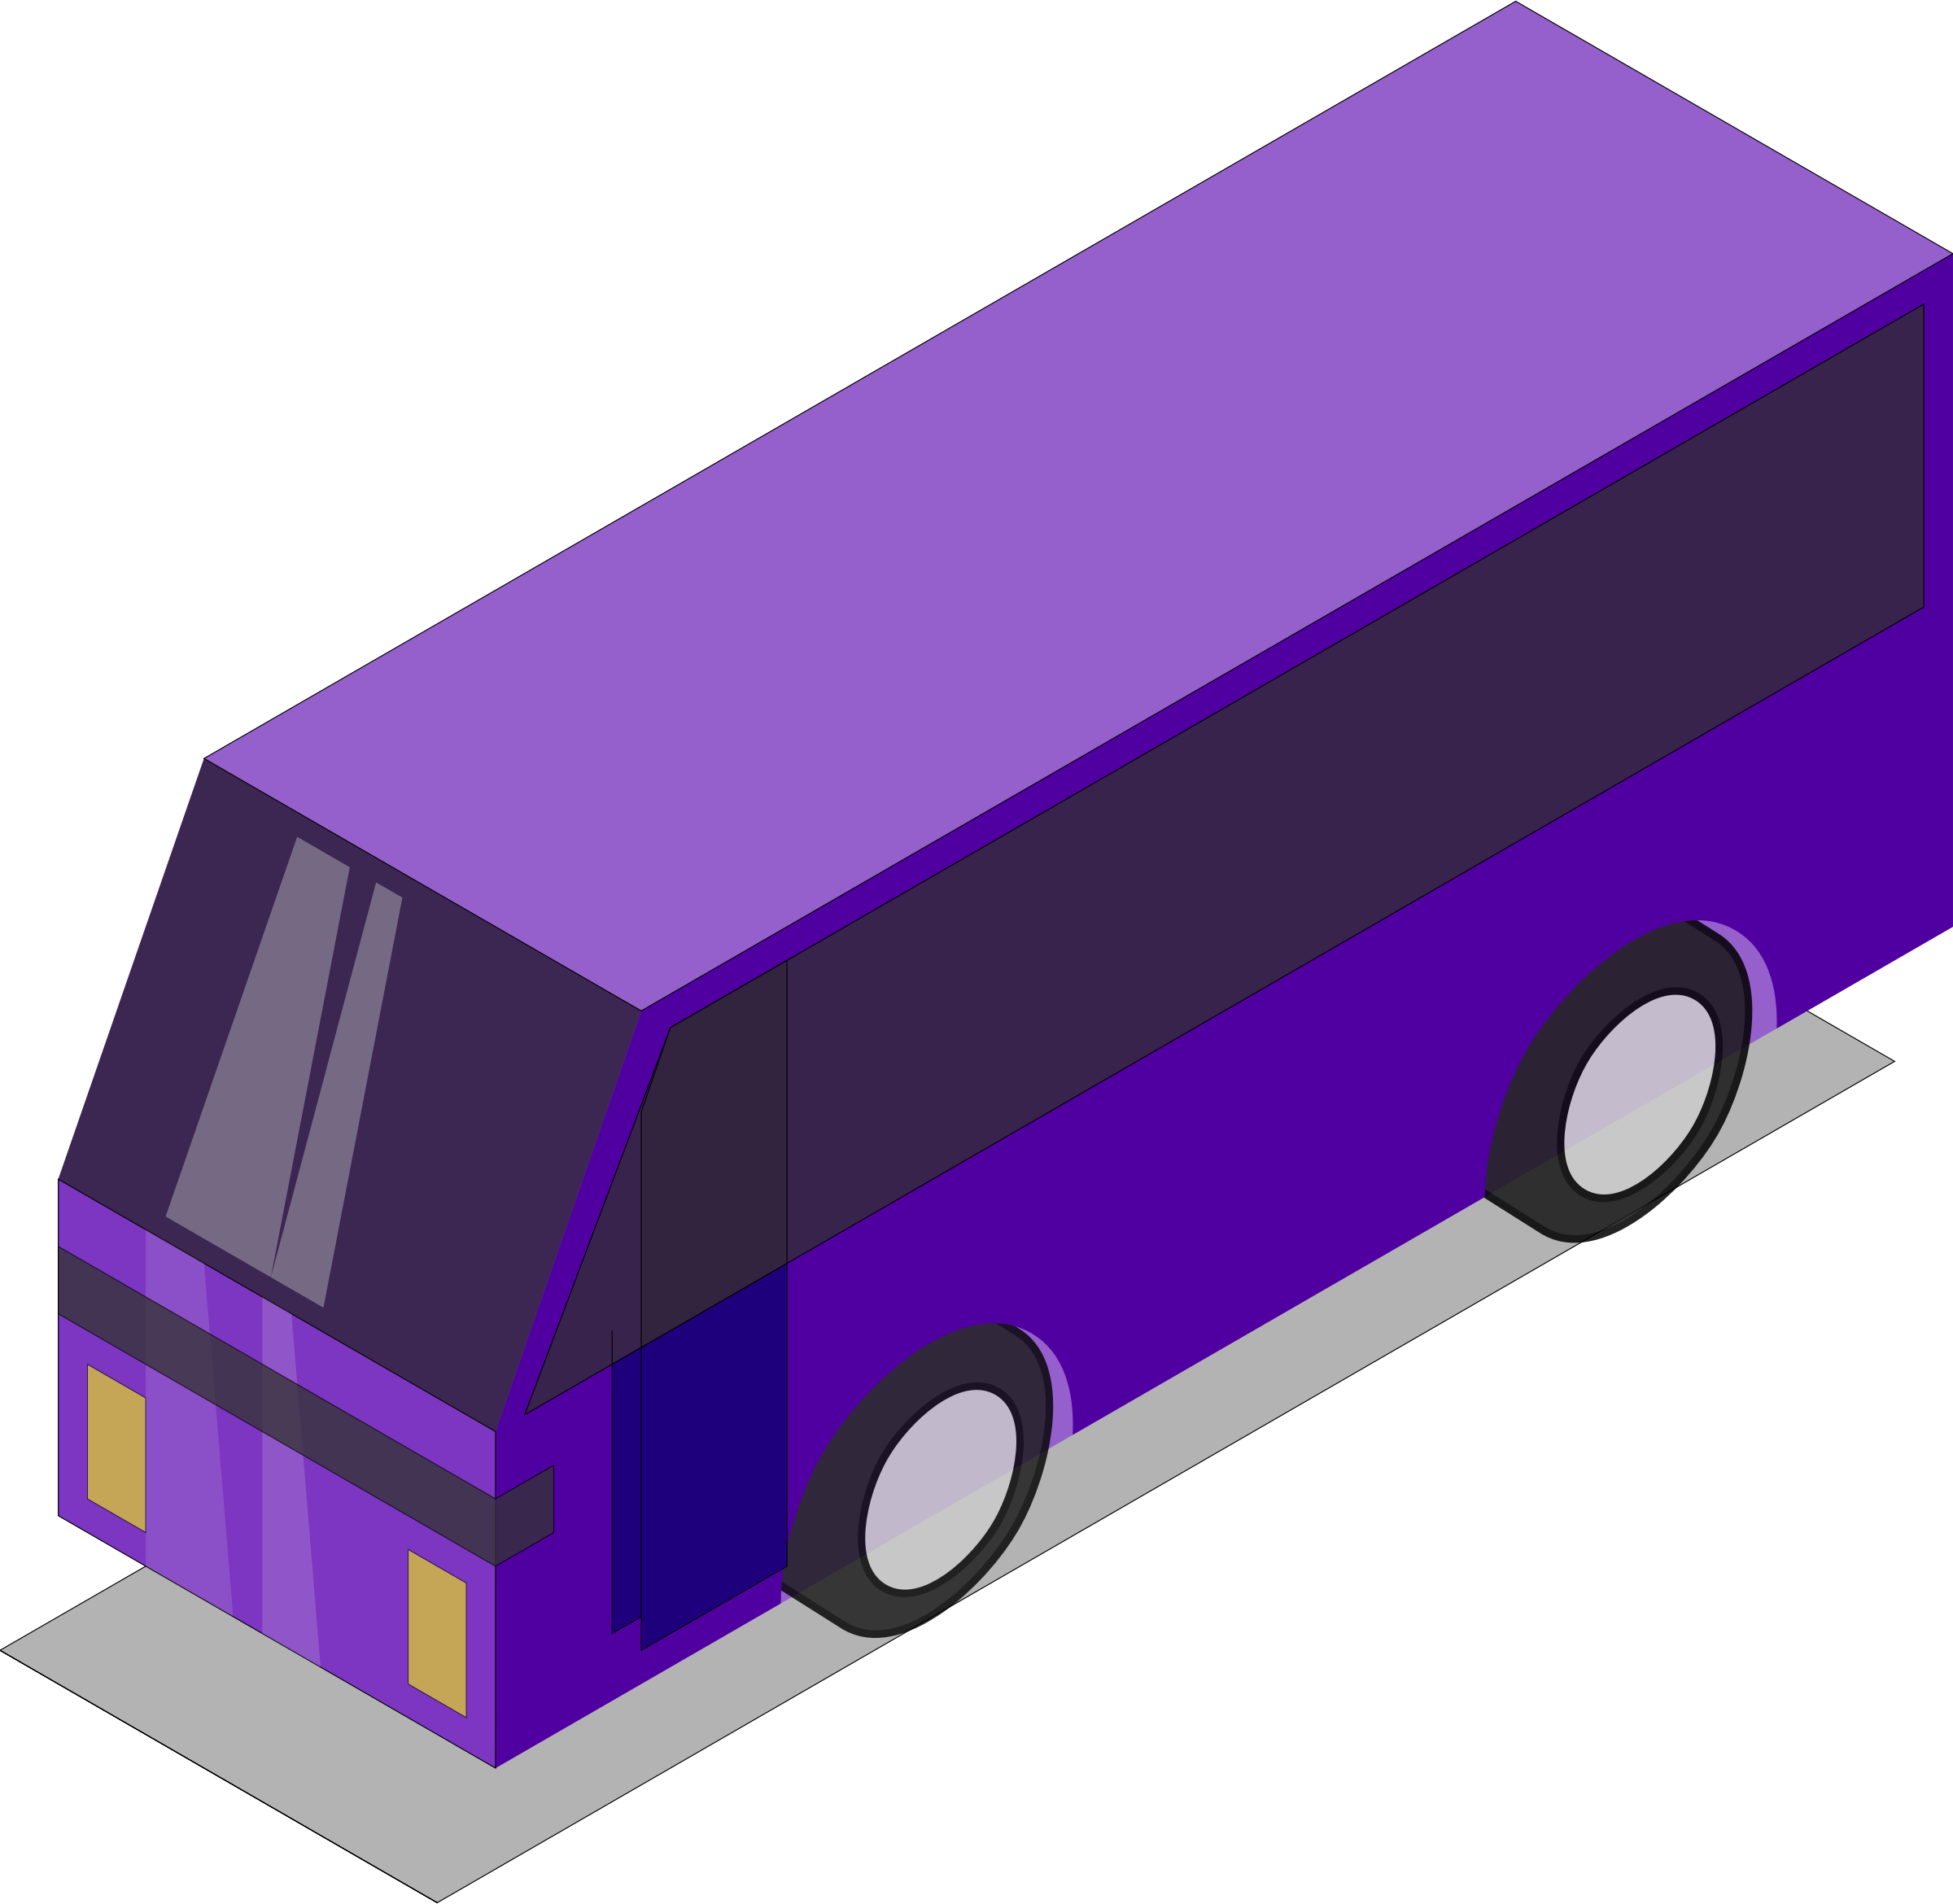 Bus and car clipart jpg freeuse library Clipart - Purple bus jpg freeuse library